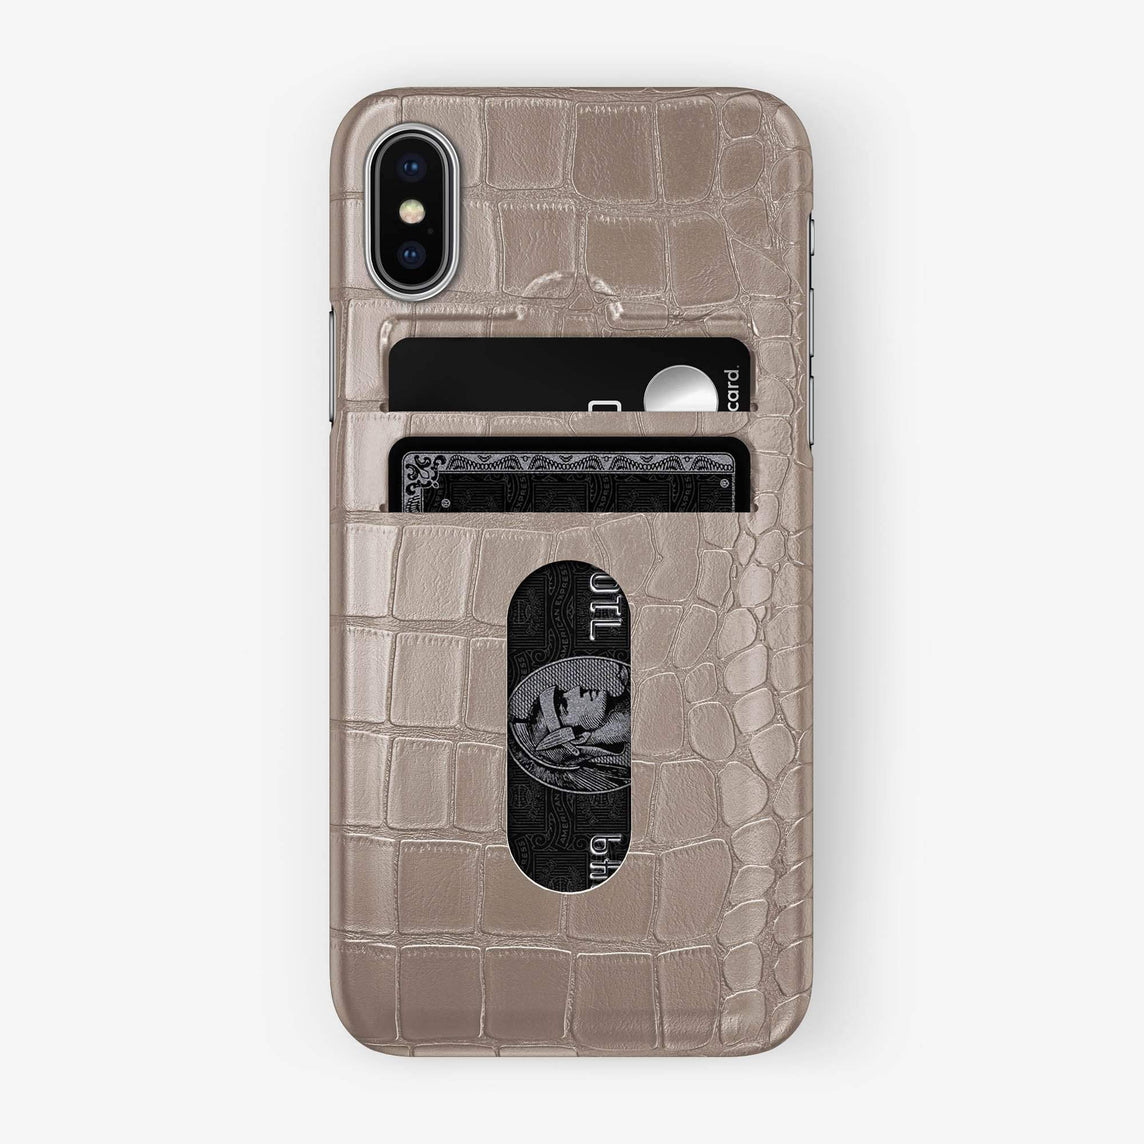 Alligator Card Holder Case iPhone Xs Max | Latte - Stainless Steel